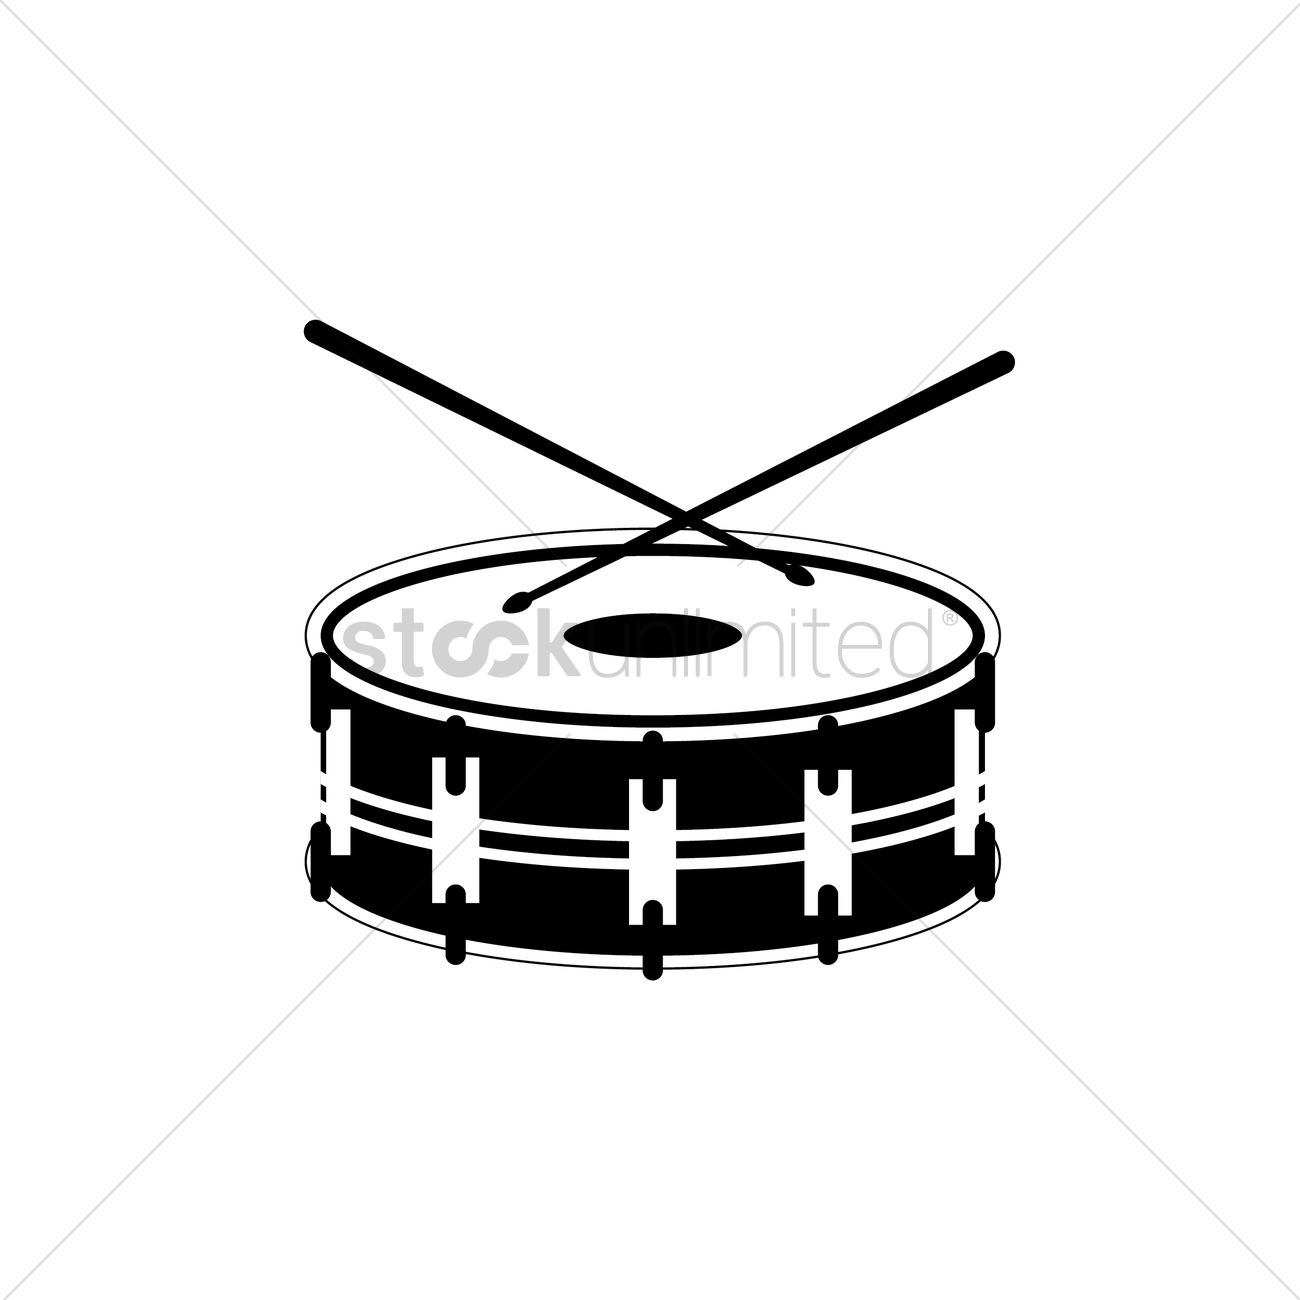 1300x1300 Free Silhouette Of Bass Drum Vector Image